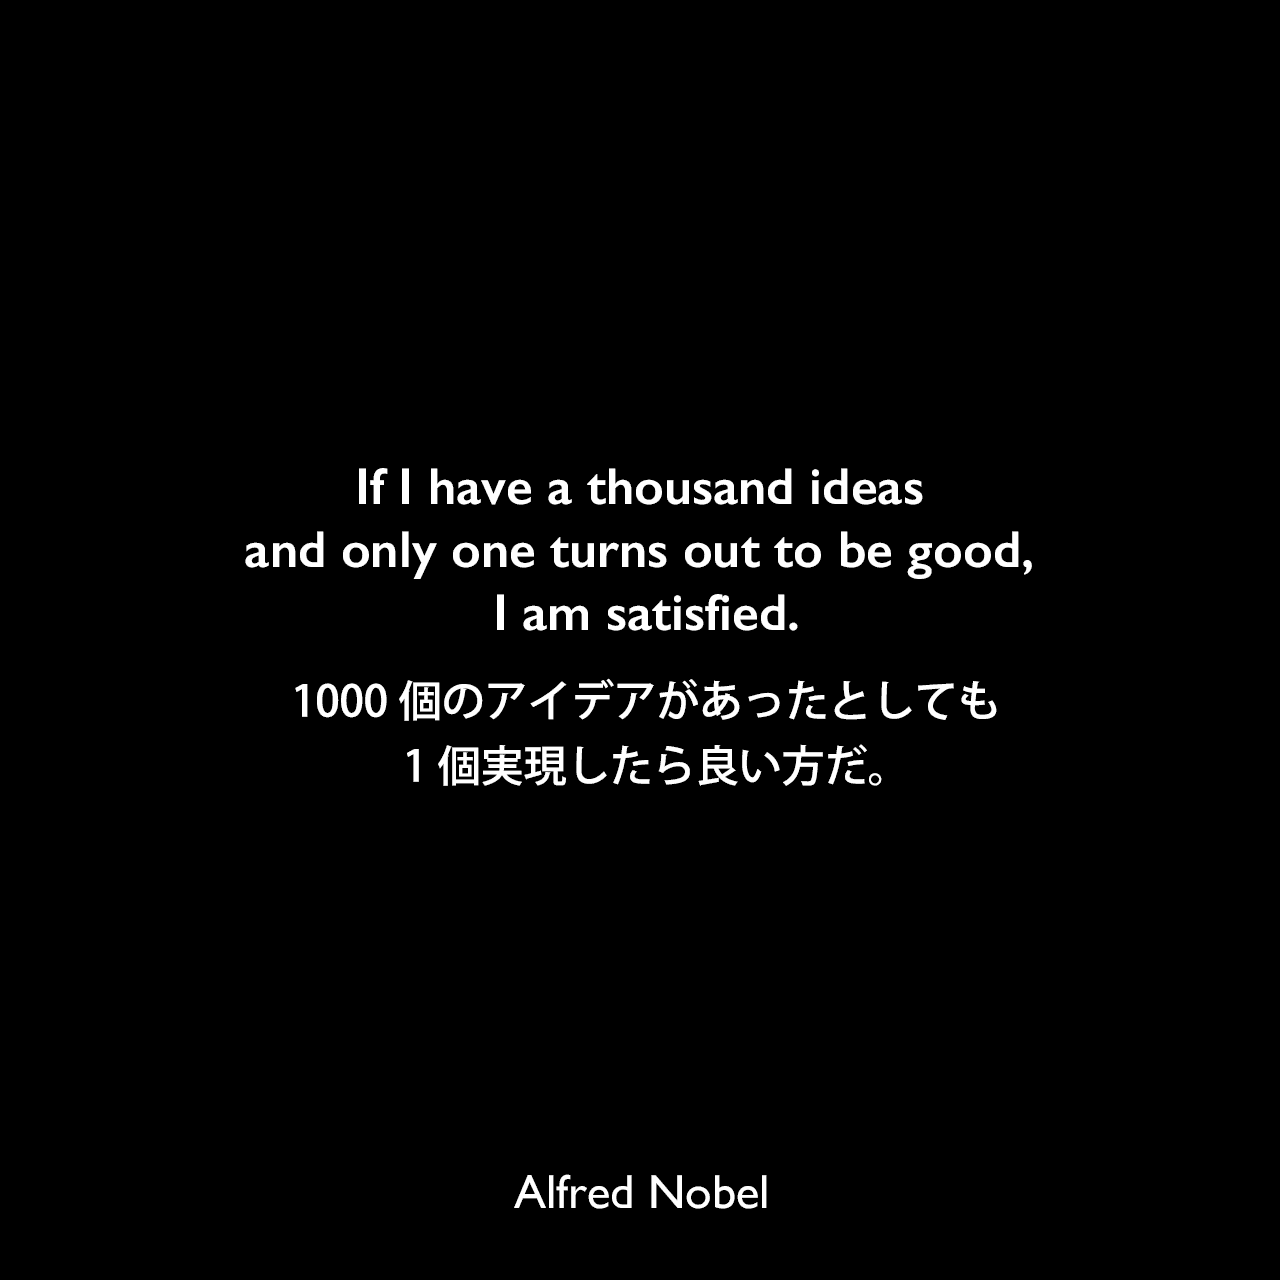 If I have a thousand ideas and only one turns out to be good, I am satisfied.1000個のアイデアがあったとしても1個実現したら良い方だ。Alfred Nobel